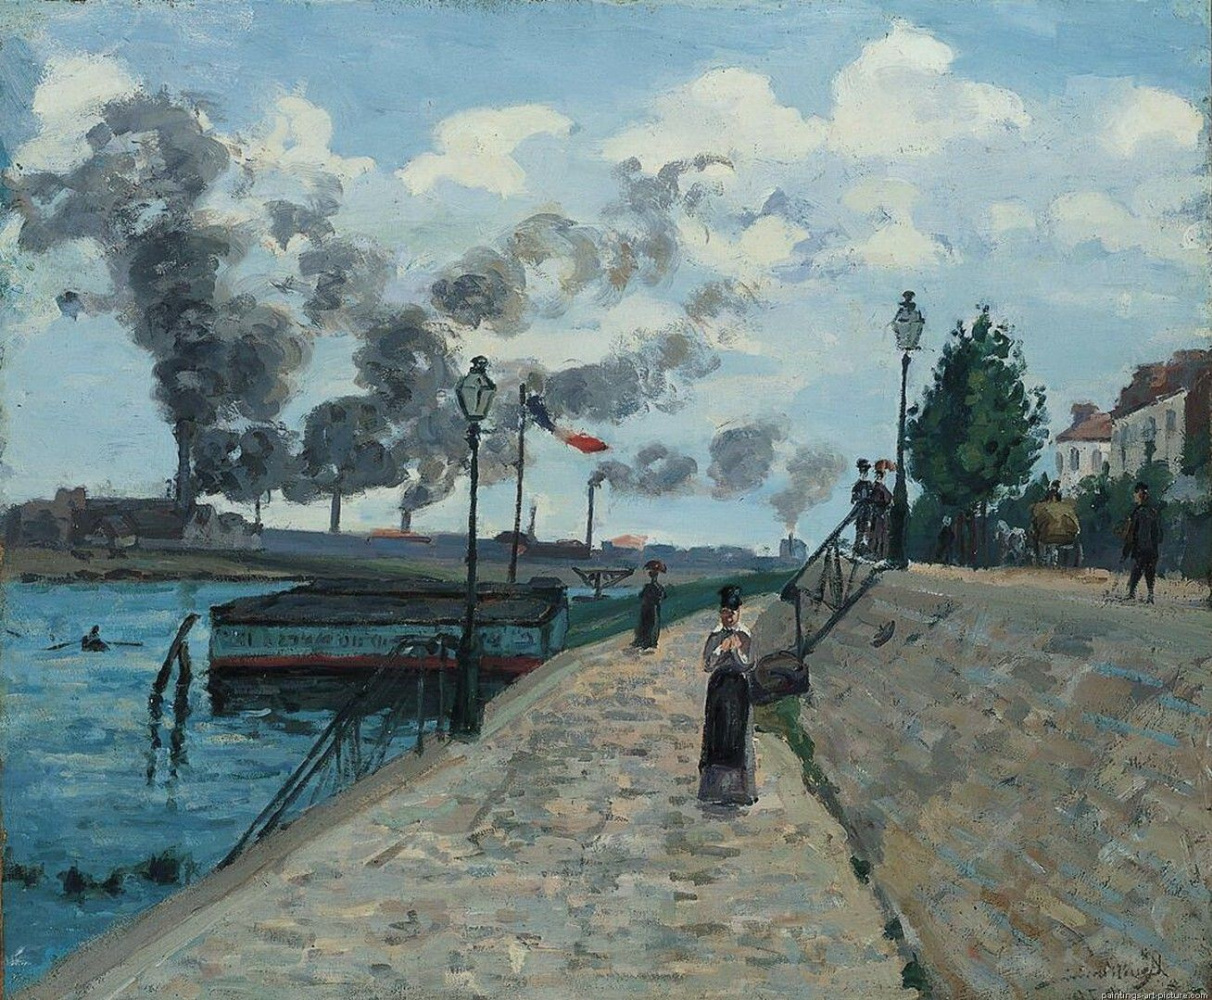 Armand Guillaumin. Hay in the area of the Sheraton (Dawn)